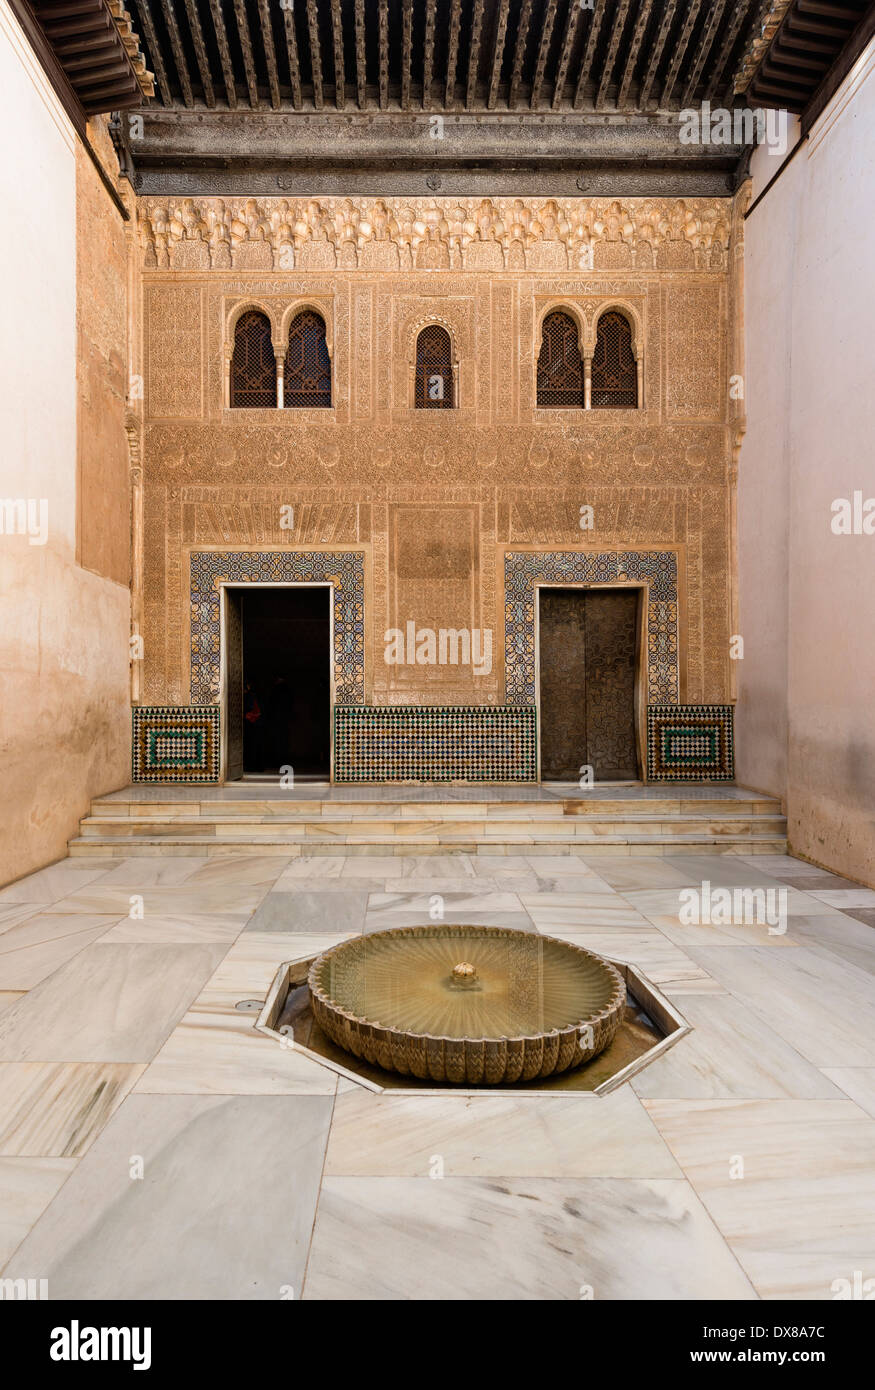 Patio del Mexuar (Court of the Council Chamber) - Stock Image